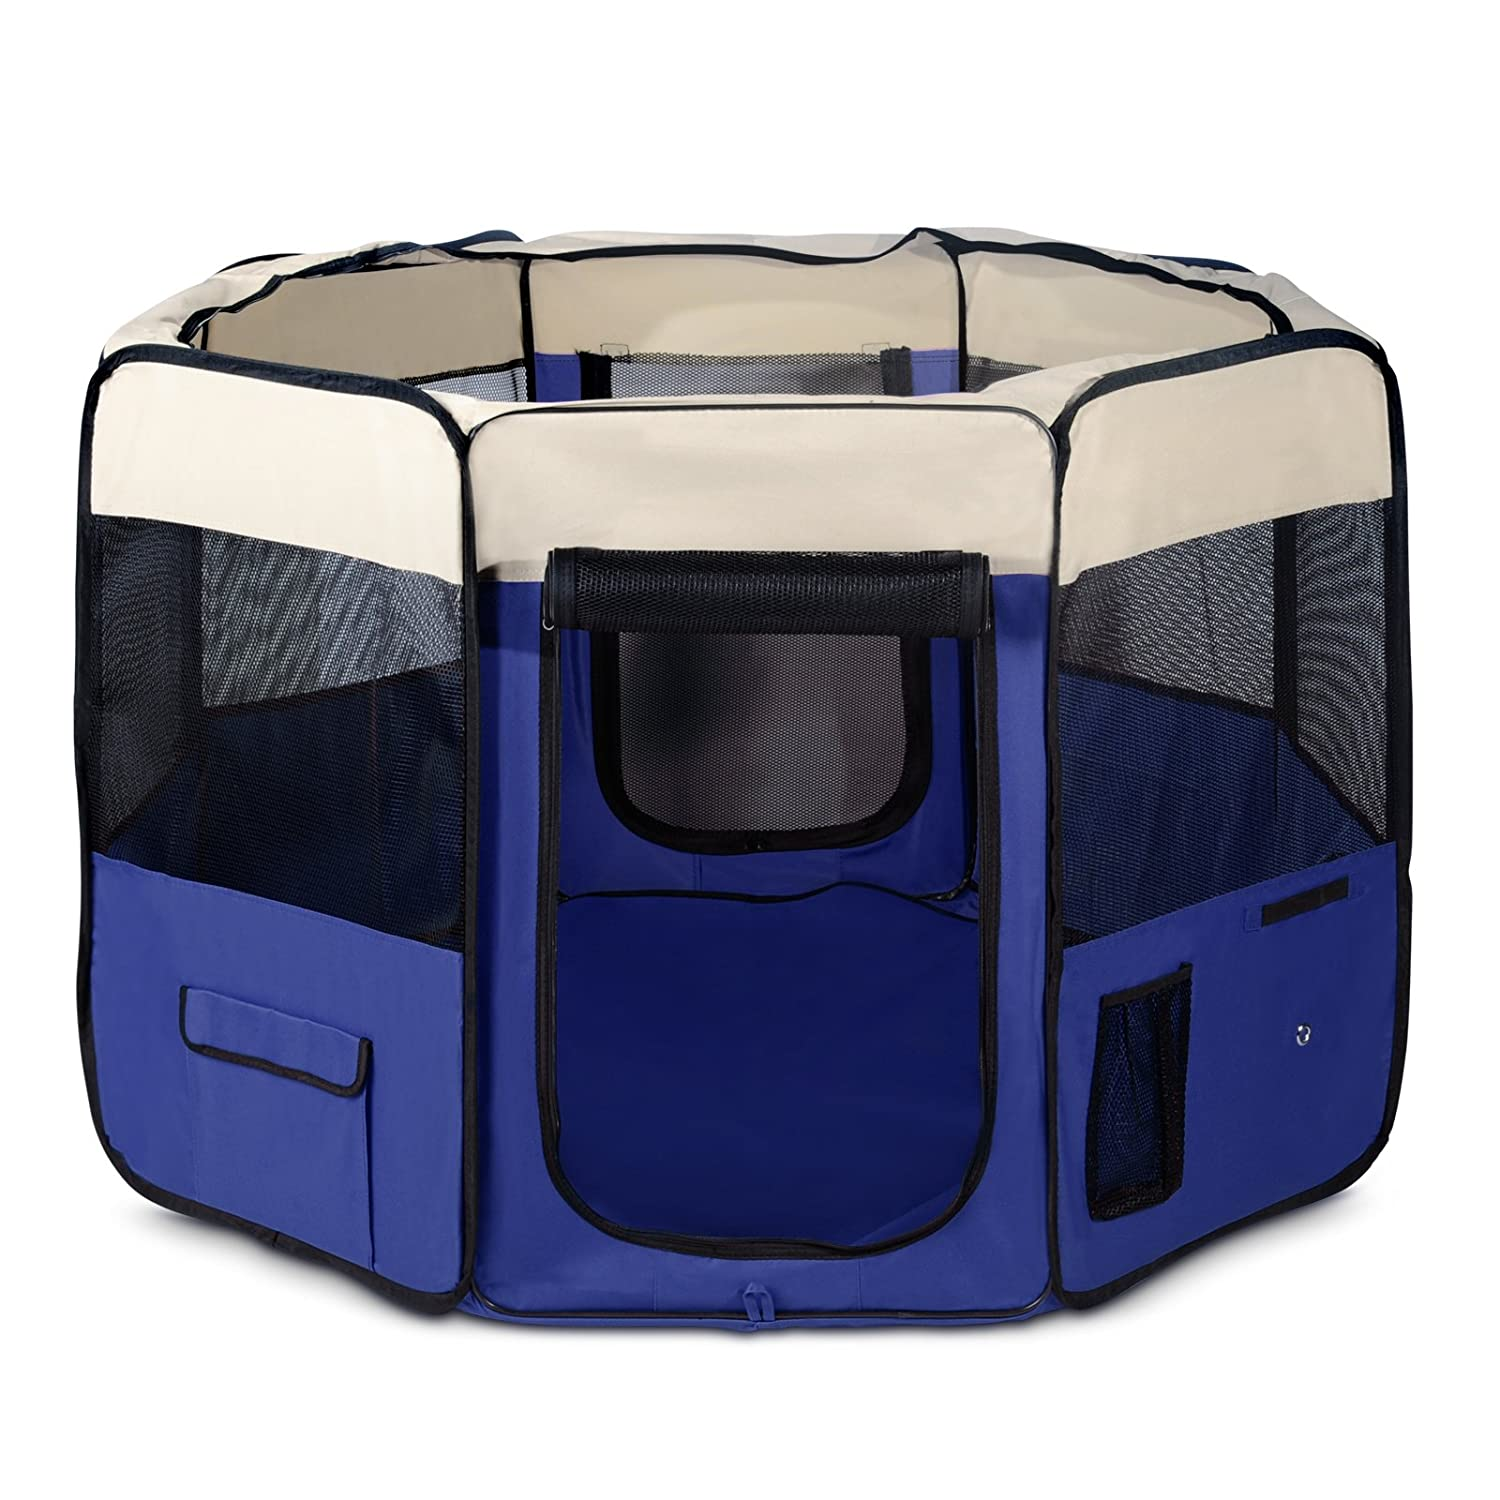 Pet Dog Playpen, i.Pet Portable Soft Dog Exercise Pen Kennel with Carry Bag for Puppy Cats Kittens Rabbits,bluee,XL